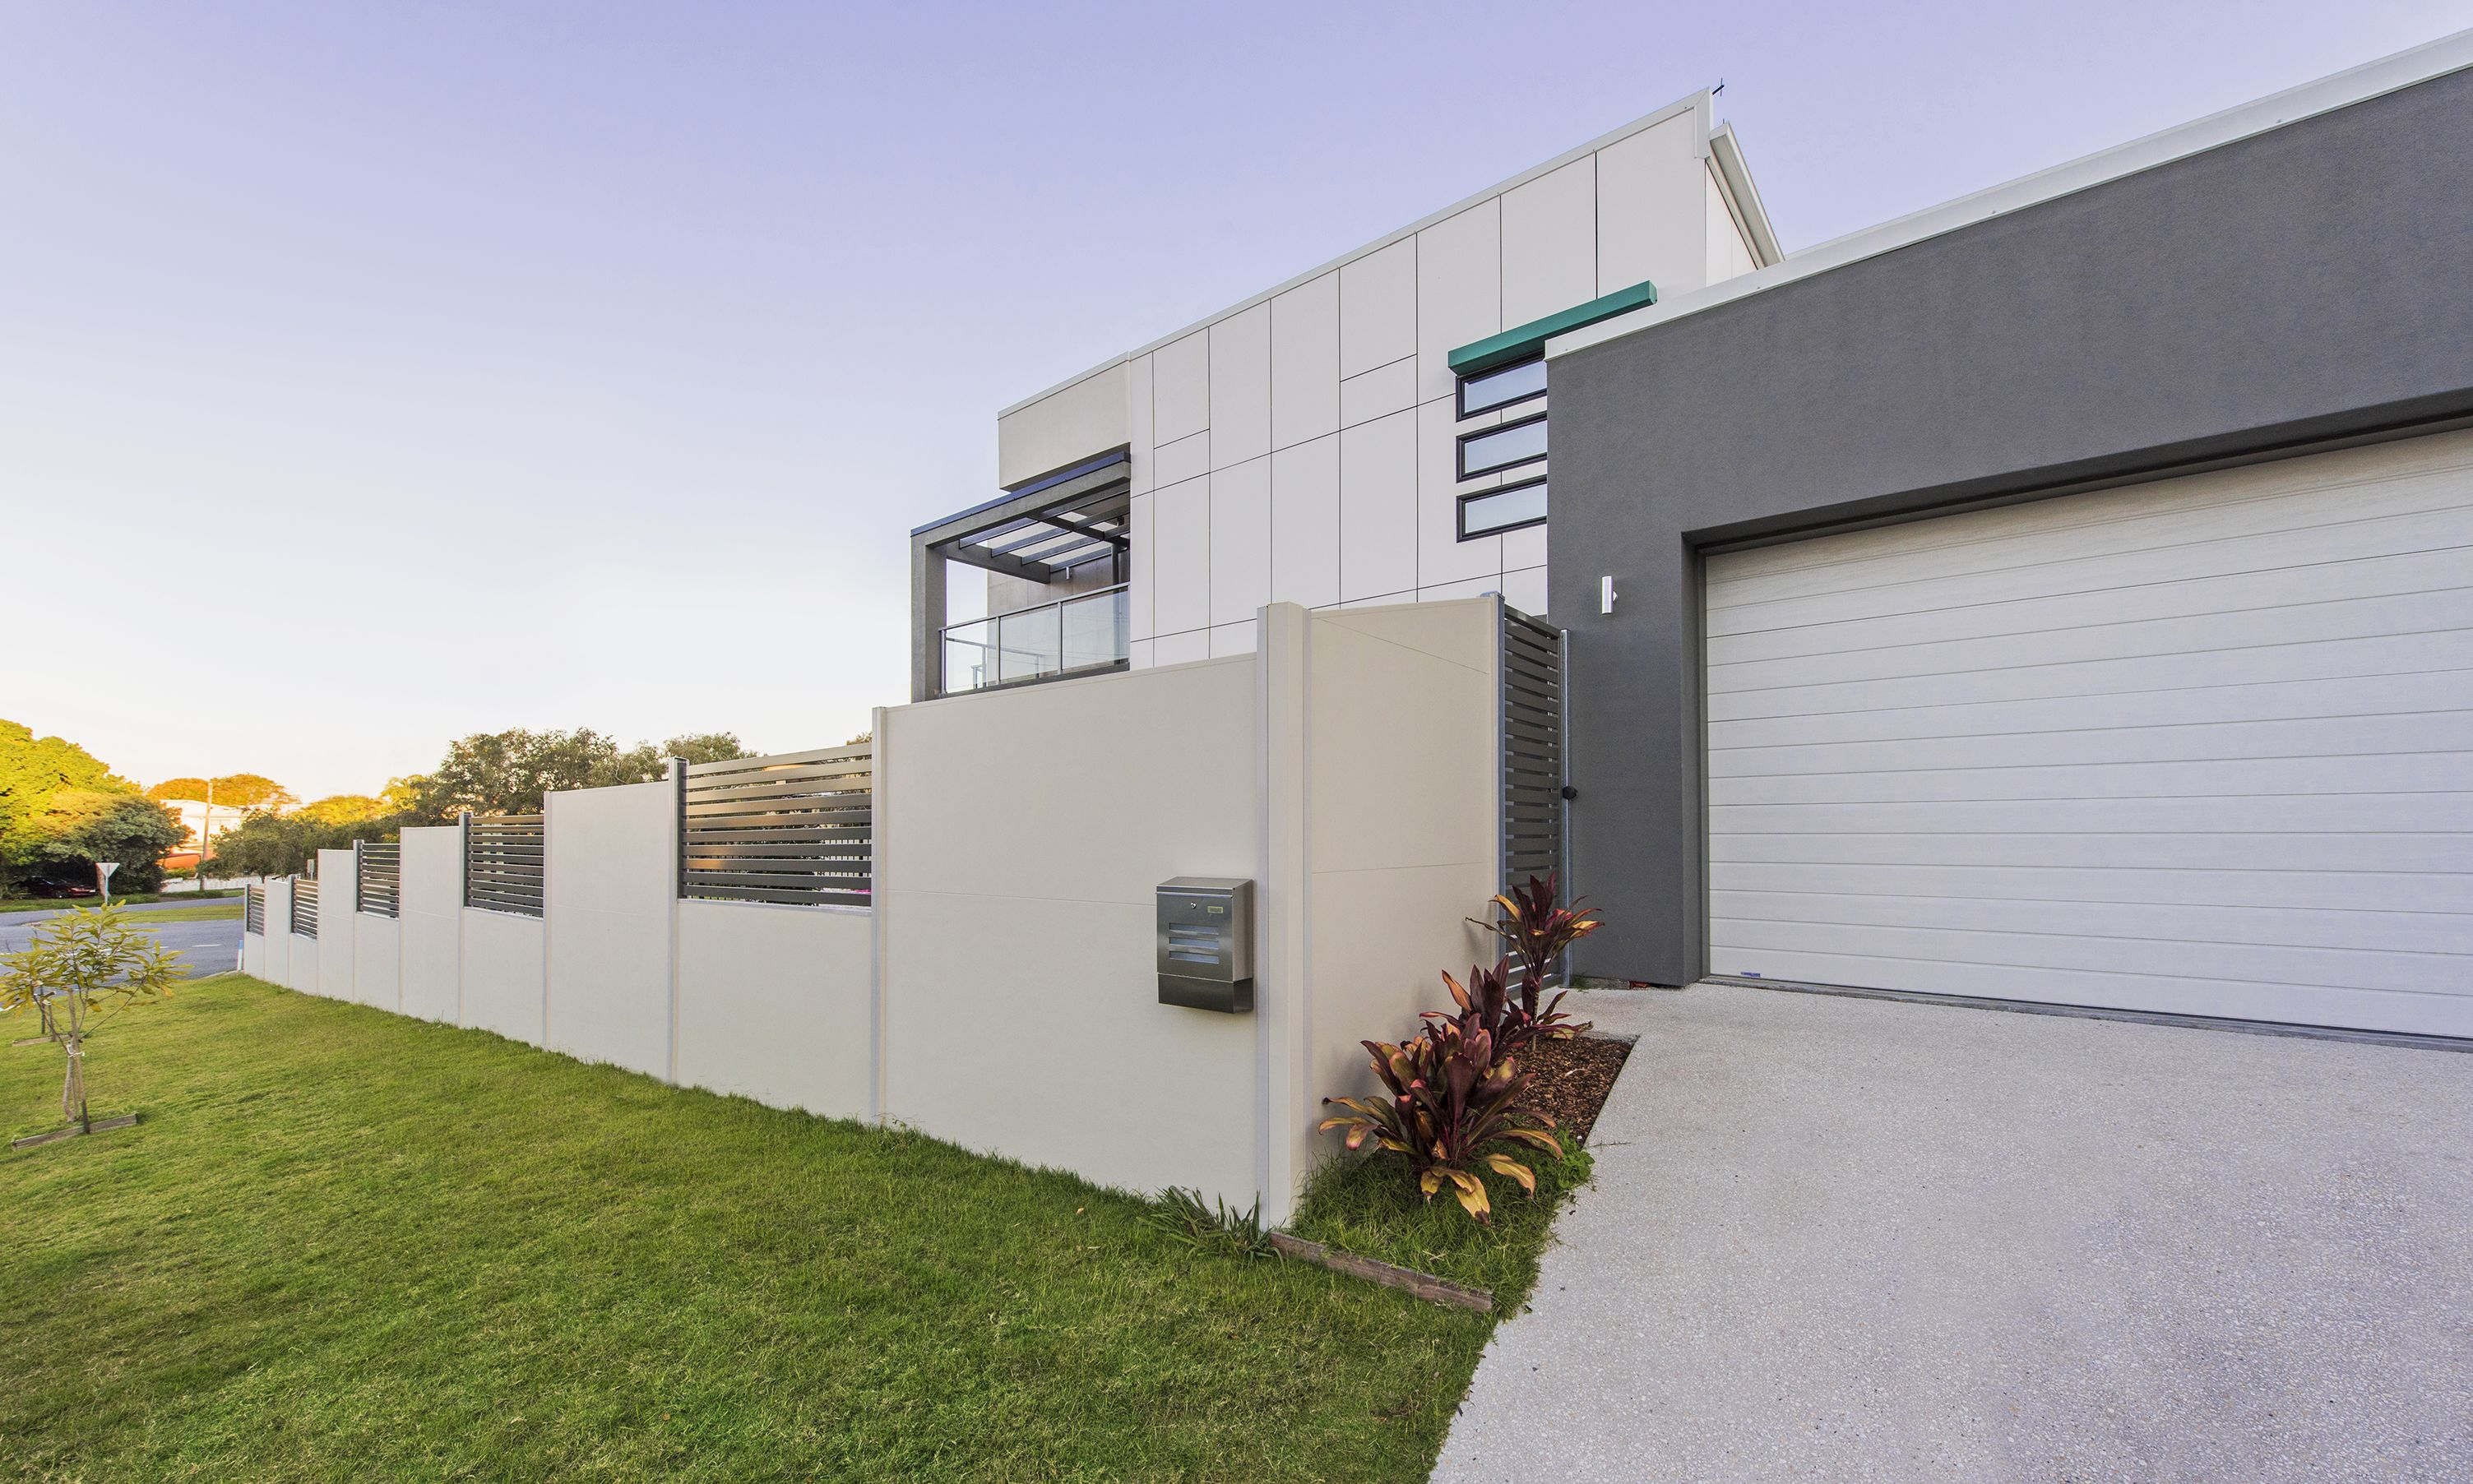 SlimWall installed to match exterior design of home | SlimWall ...